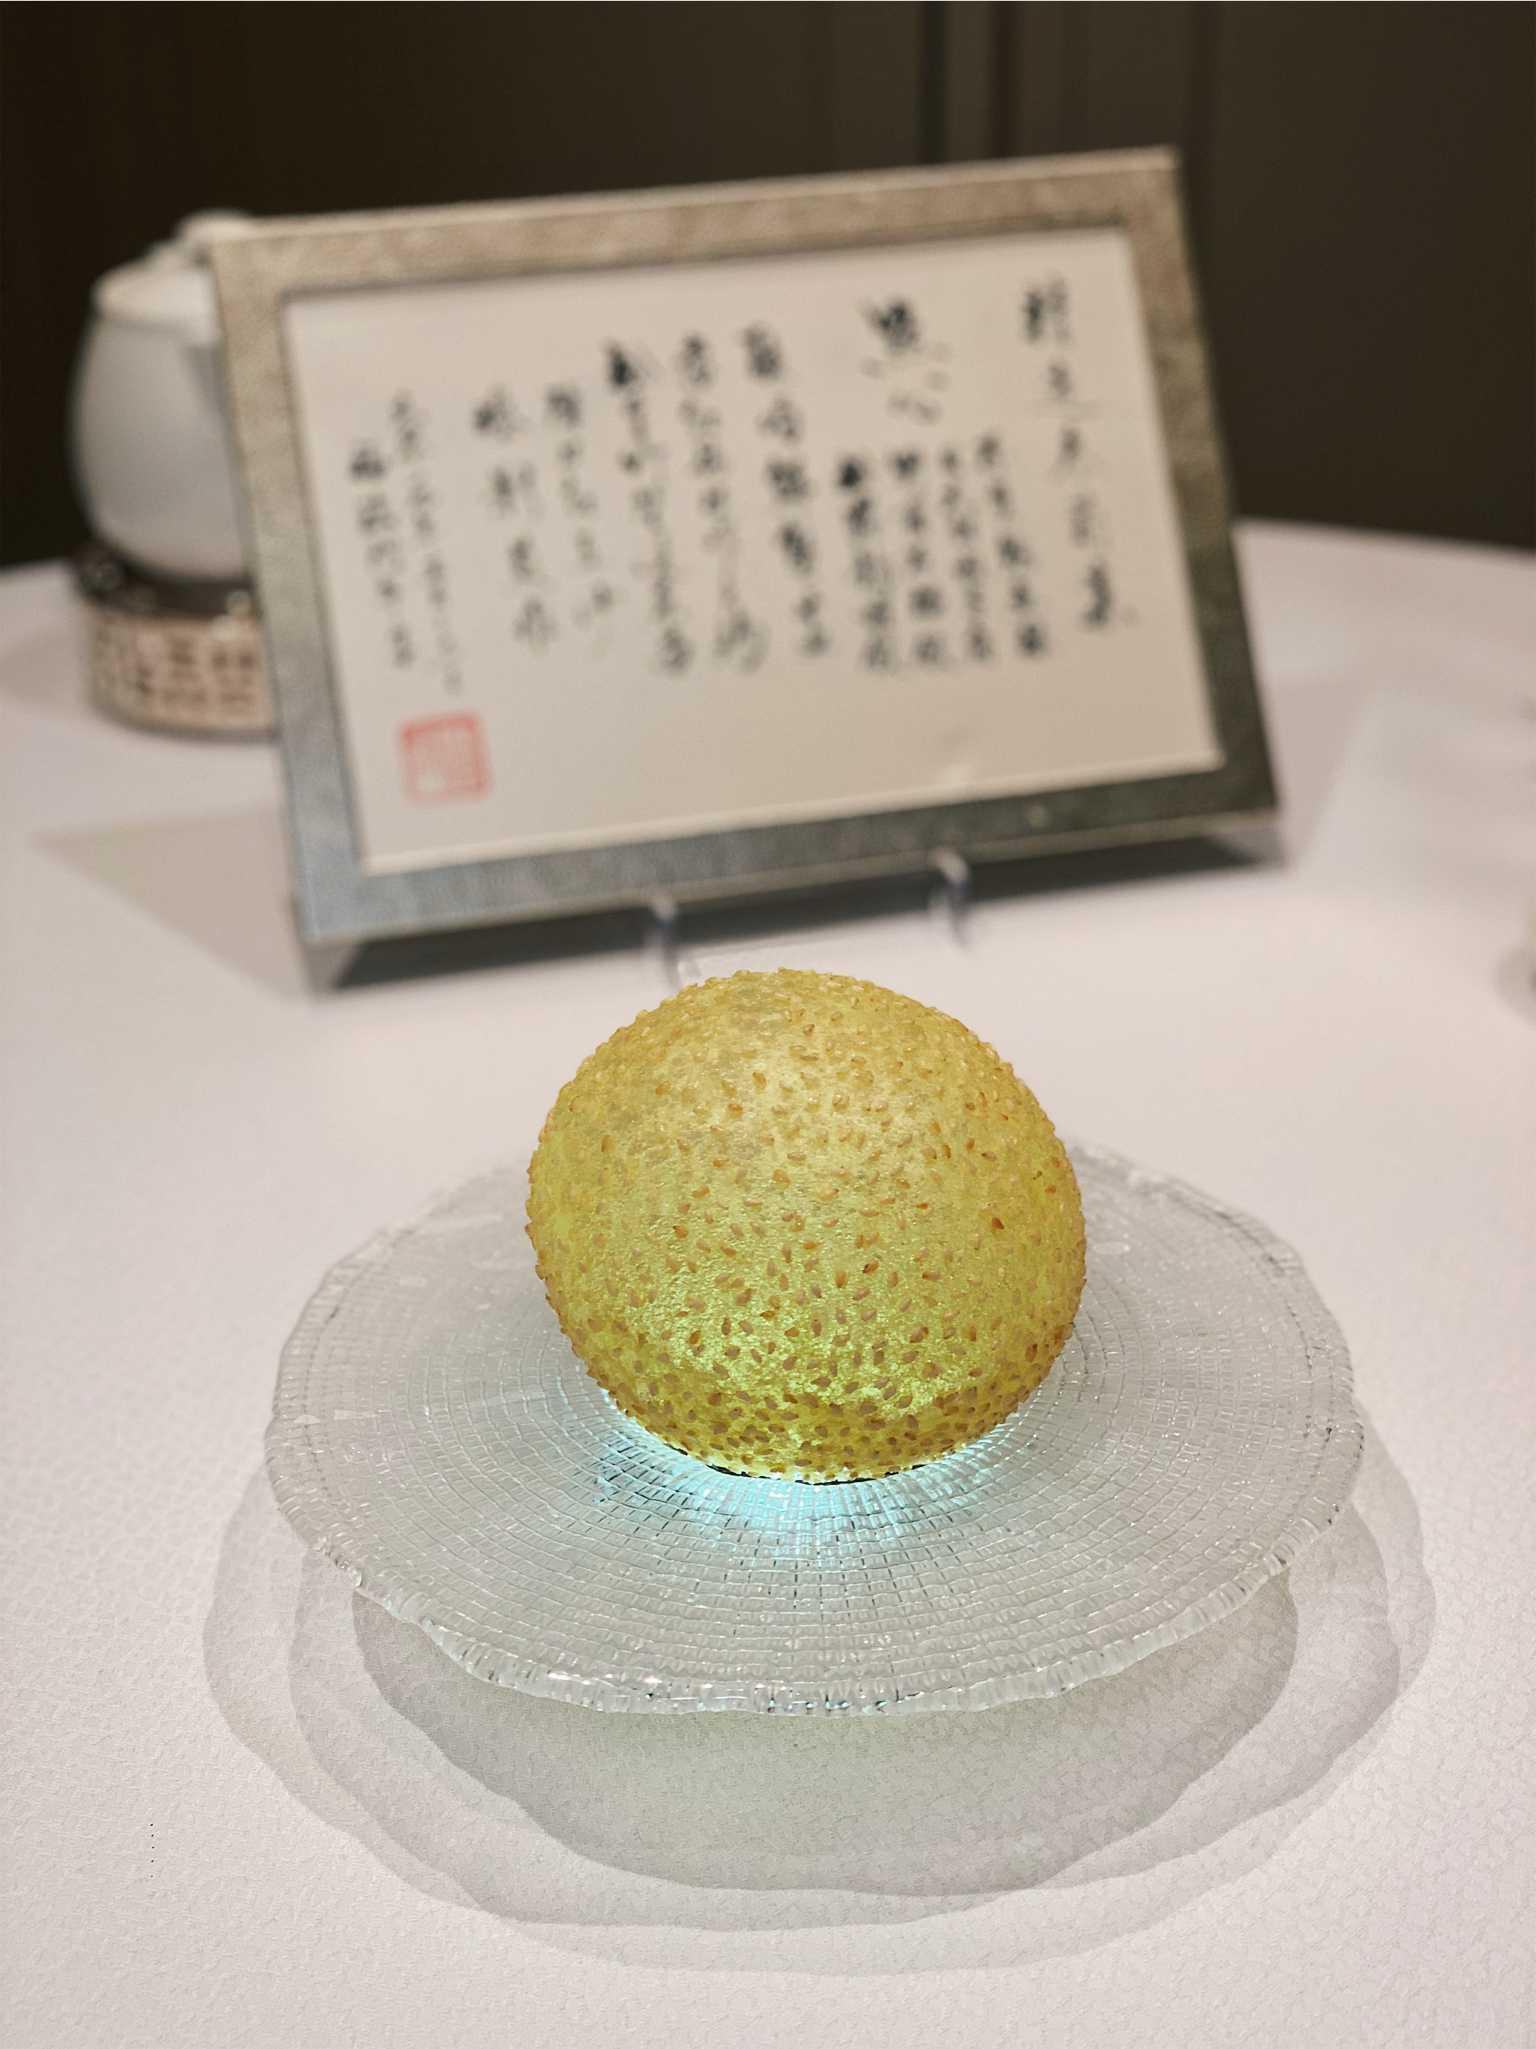 Galaxy Macau Fook Lam Moon deep-fried sesame ball